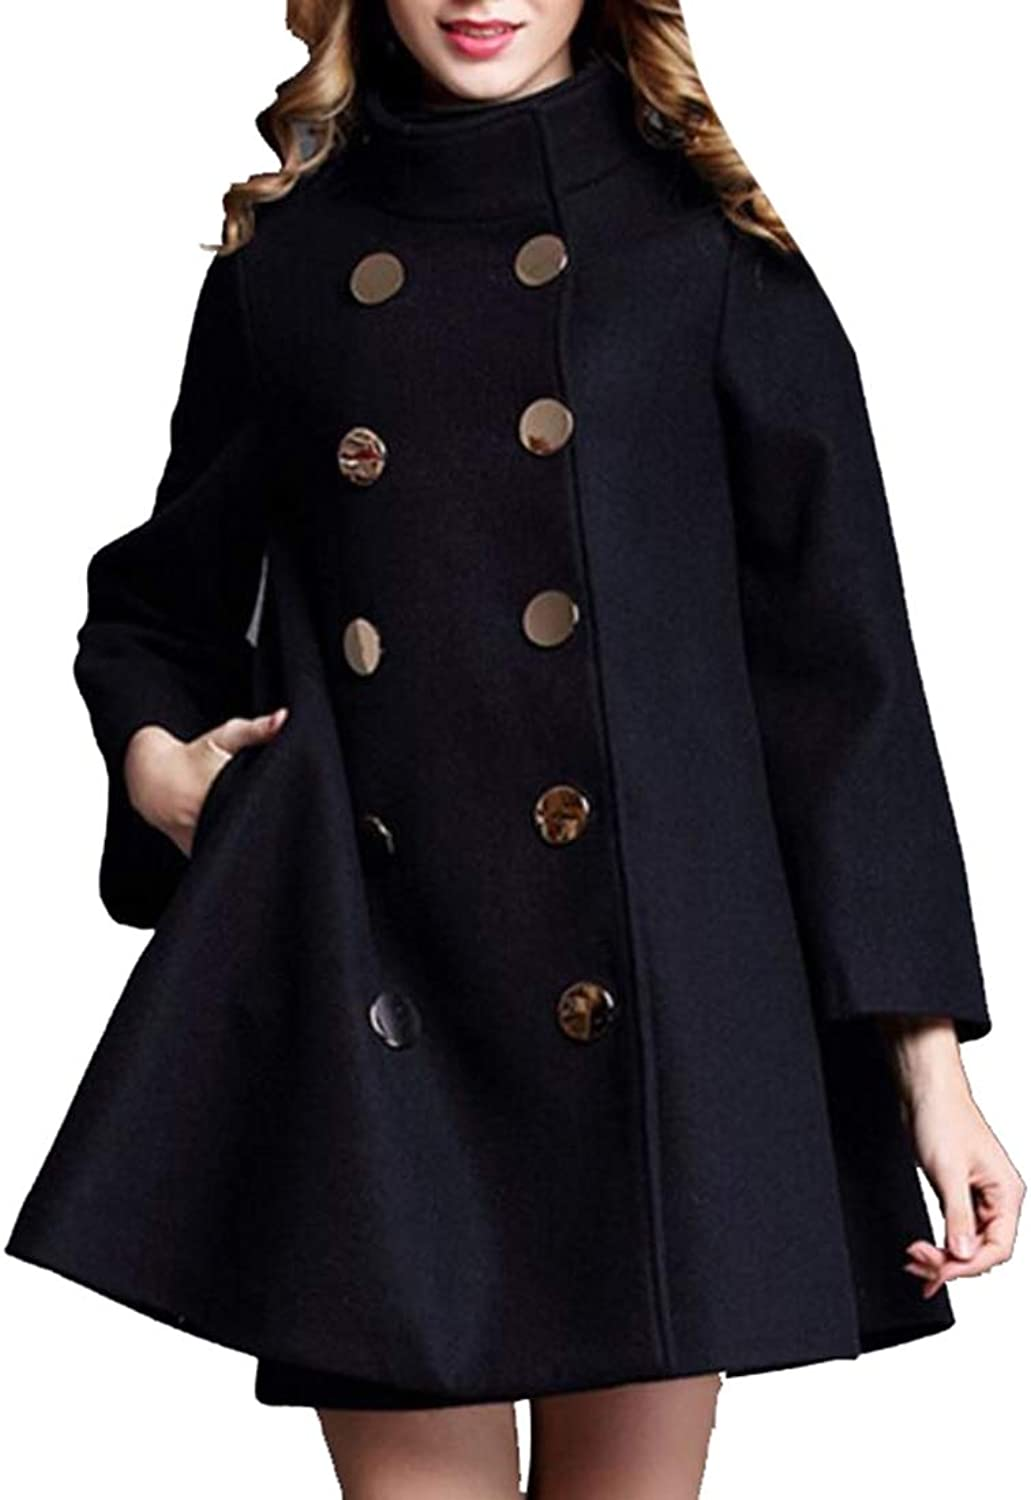 Sanderso Women's Winter Trench Jacket DoubleBreasted Pea Coat Lapel Wool Coat